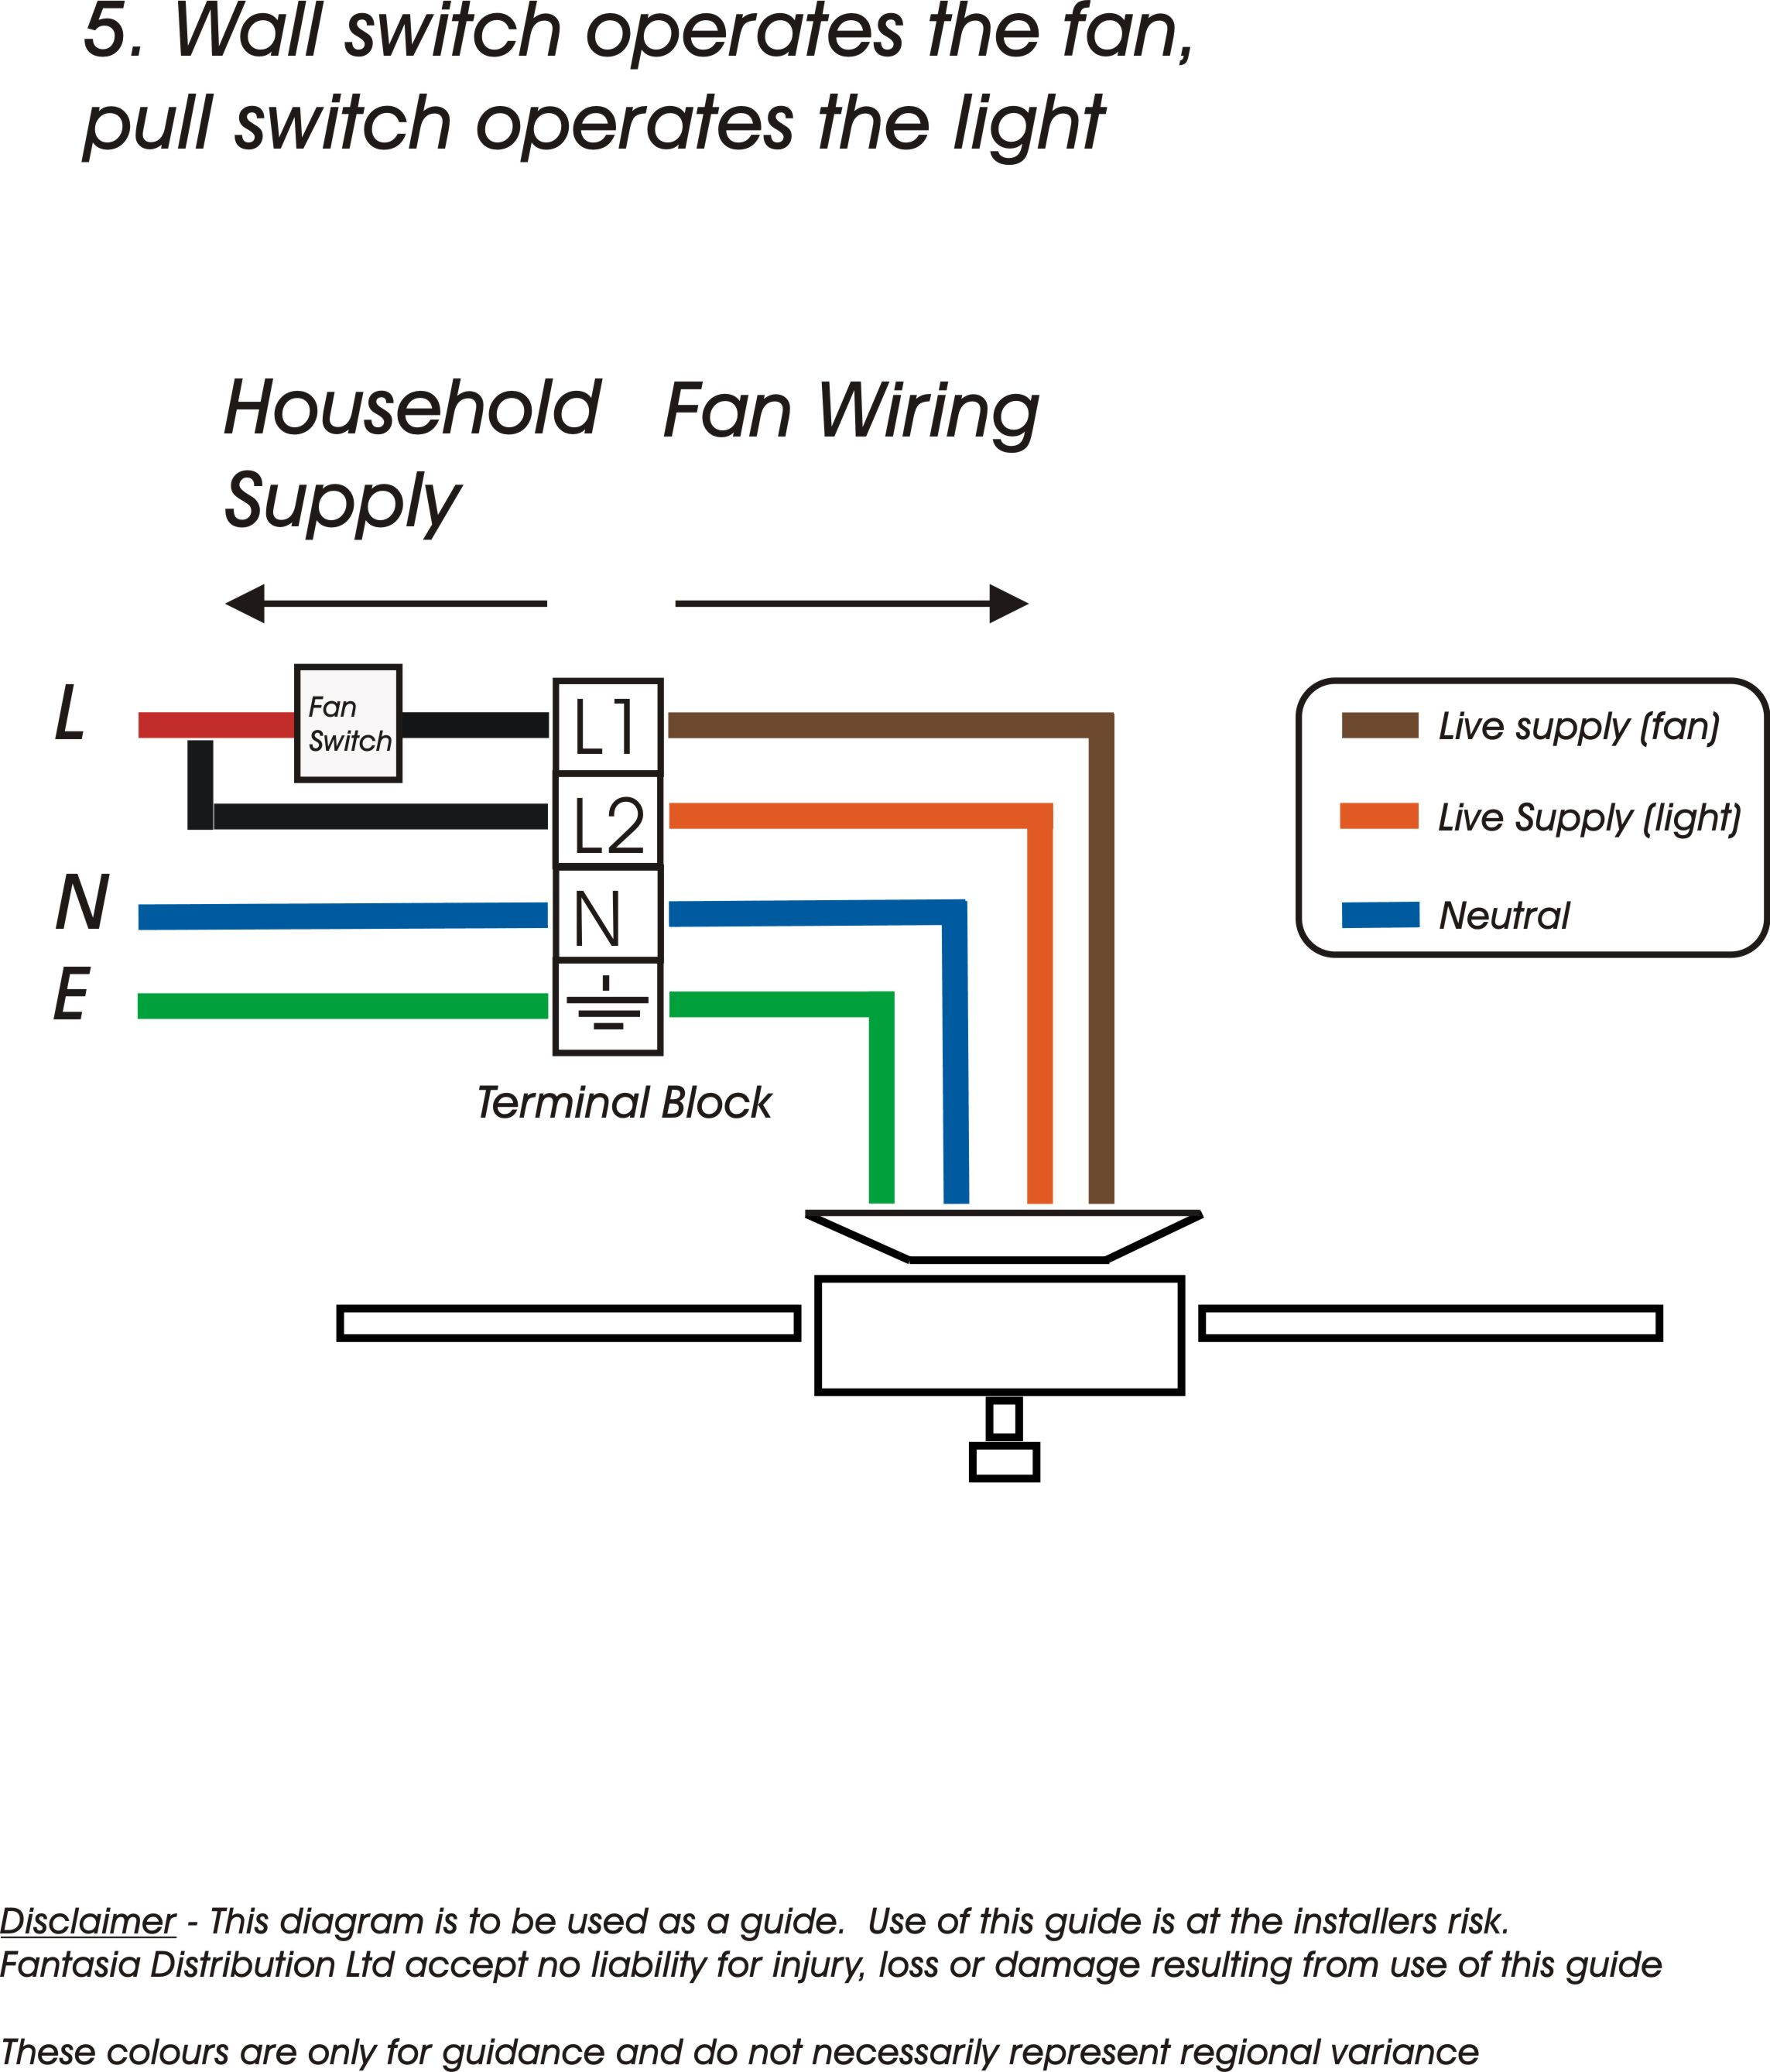 Switch To Fan Wiring Diagram | Wiring Diagram - 3 Speed Fan Motor Wiring Diagram